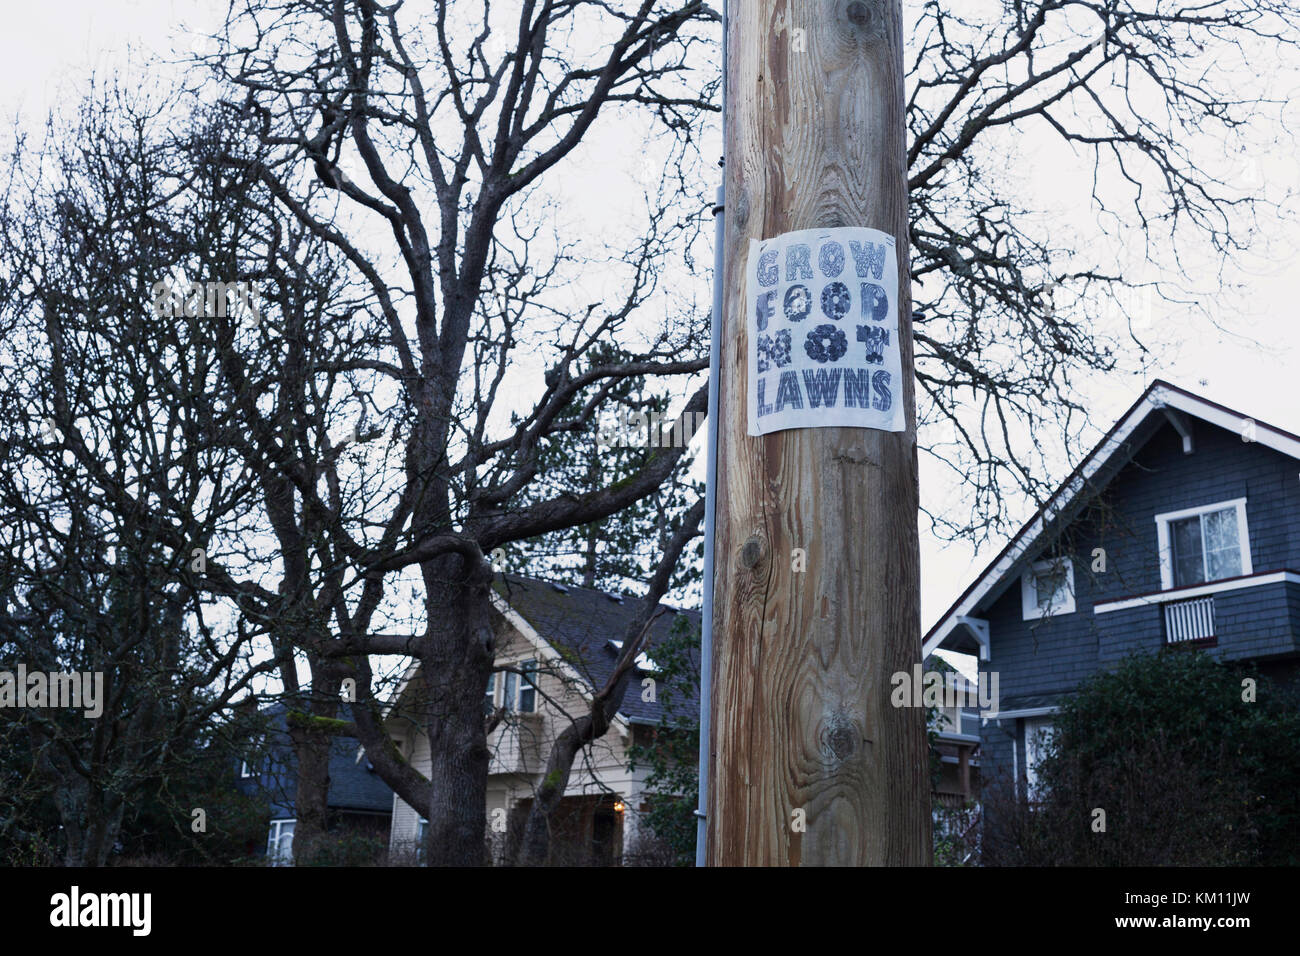 Grow food not lawns sign on power pole, Victoria BC Canada - Stock Image